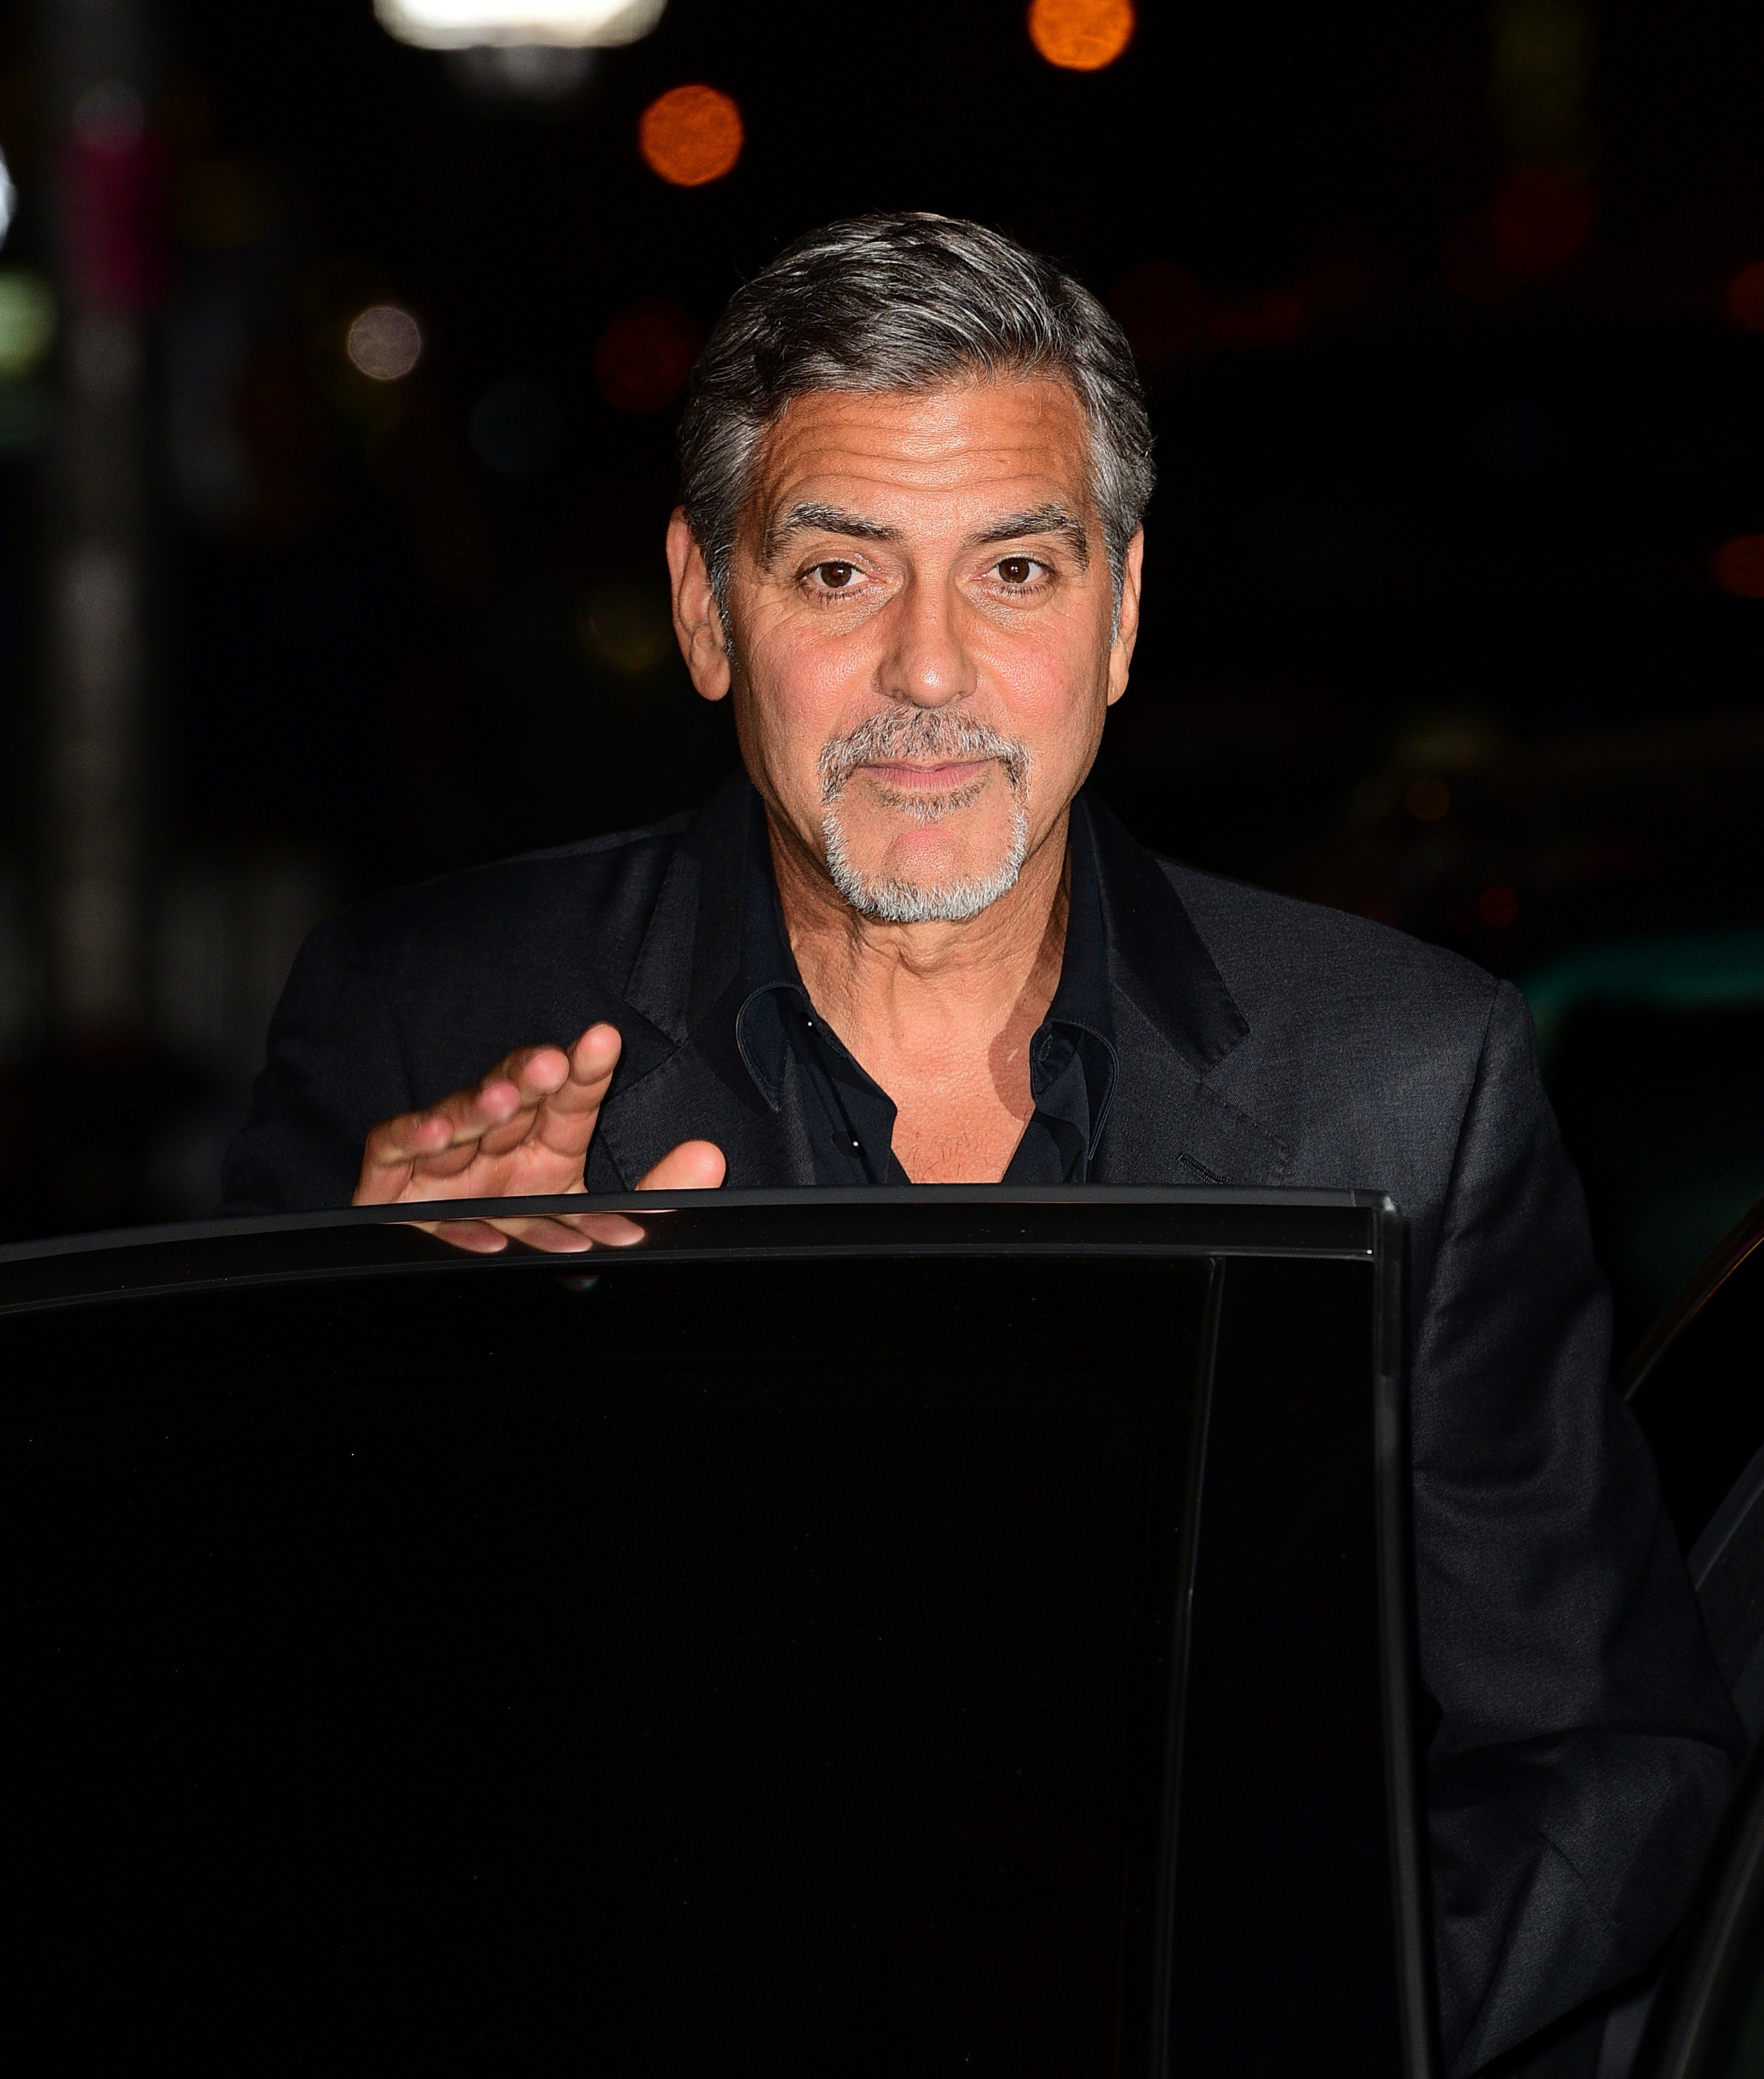 George Clooney leaves the first taping of  The Late Show With Stephen Colbert  at Ed Sullivan Theater on September 8, 2015 in New York City.